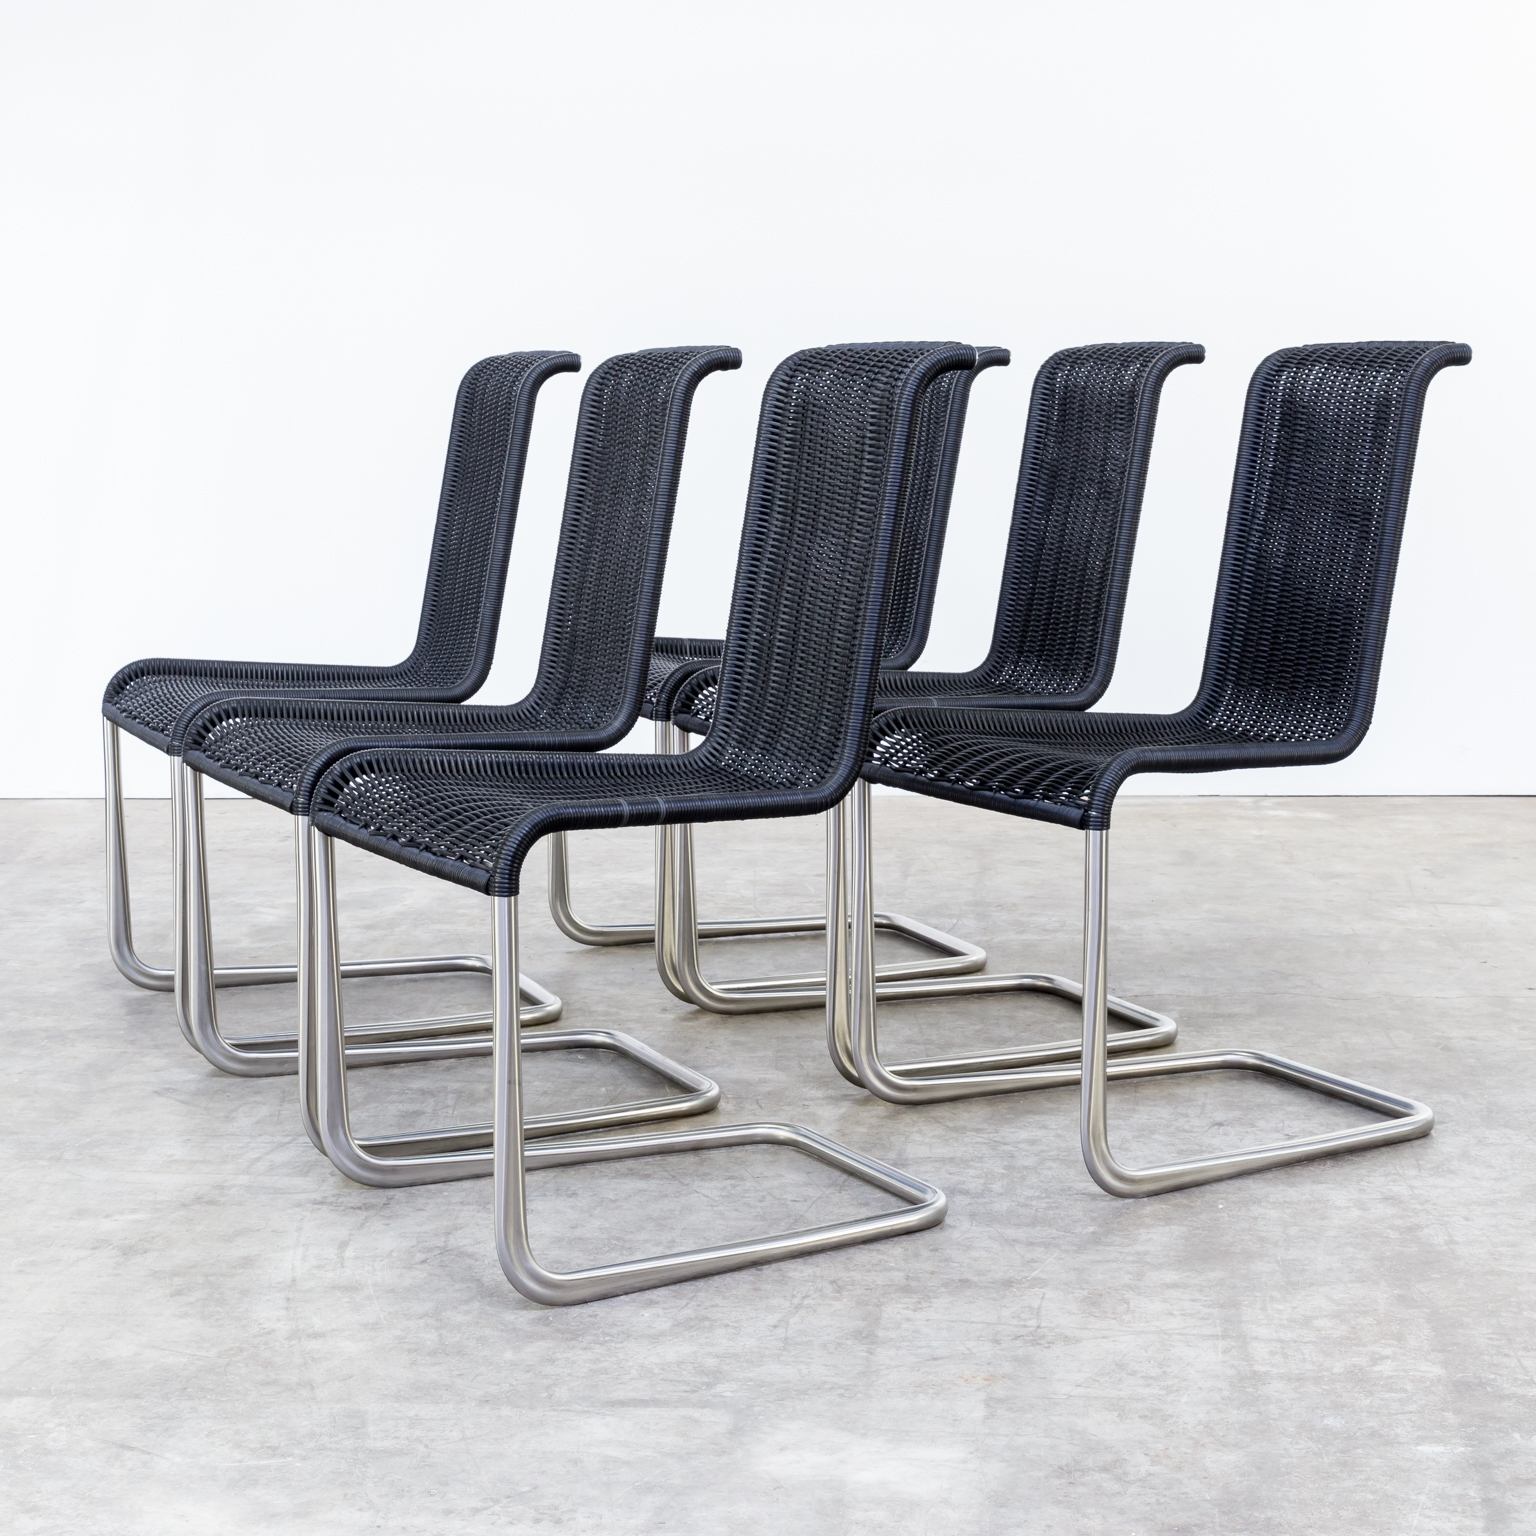 set-of-6-b20-dinner-chairs-by-jean-prouvé-for-tecta-1980s.jpg